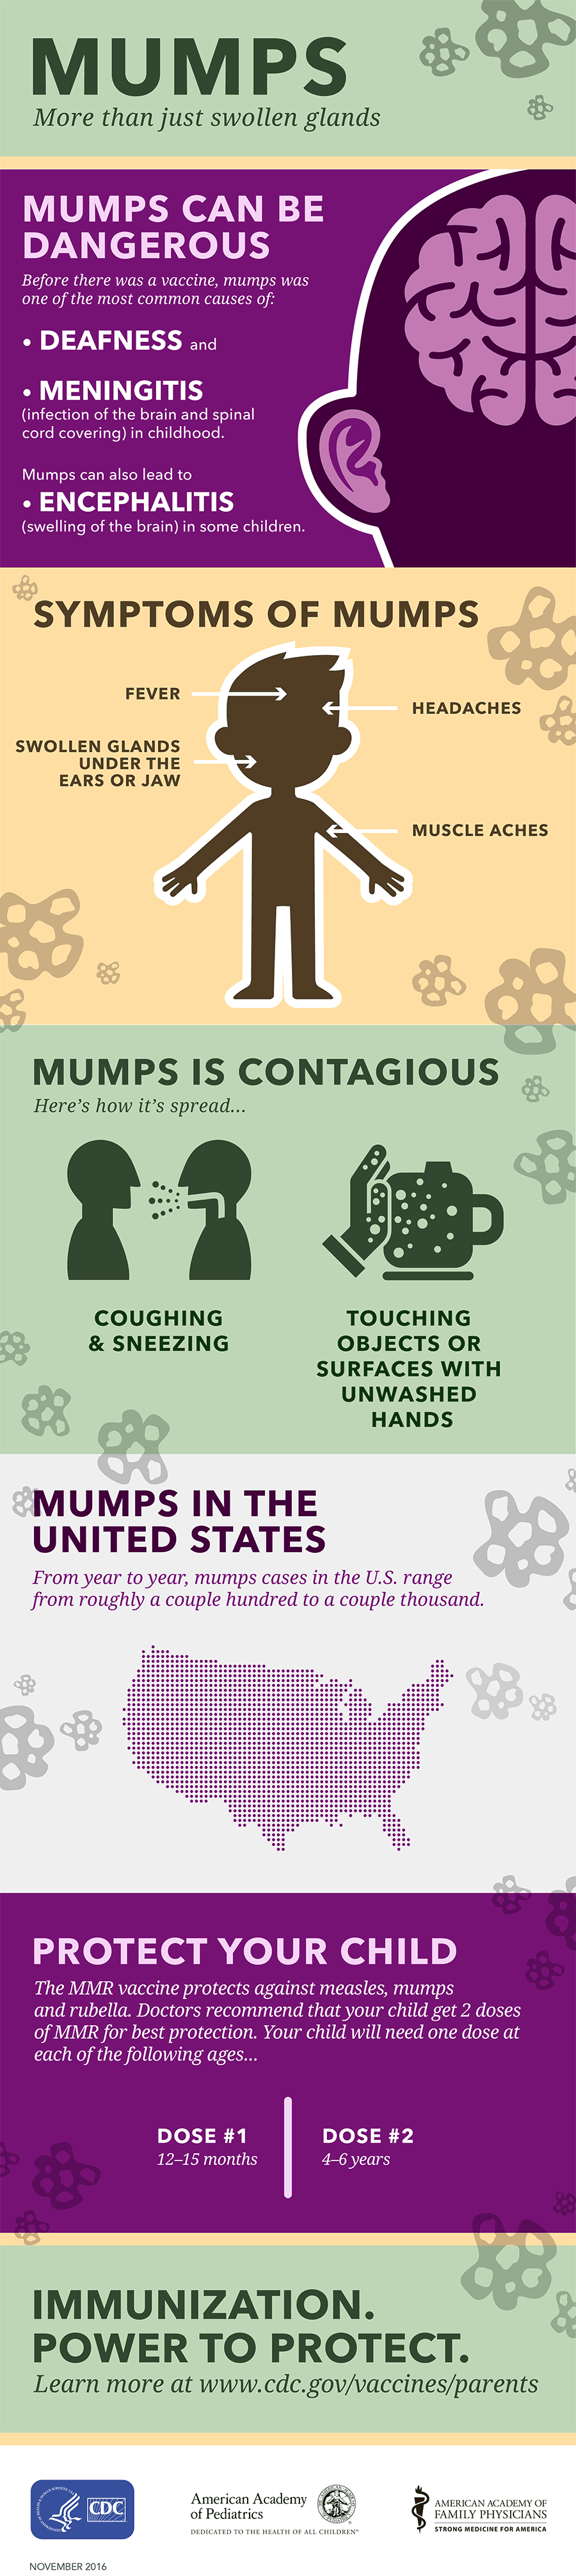 Mumps. More than just swollen glands. Infographic.